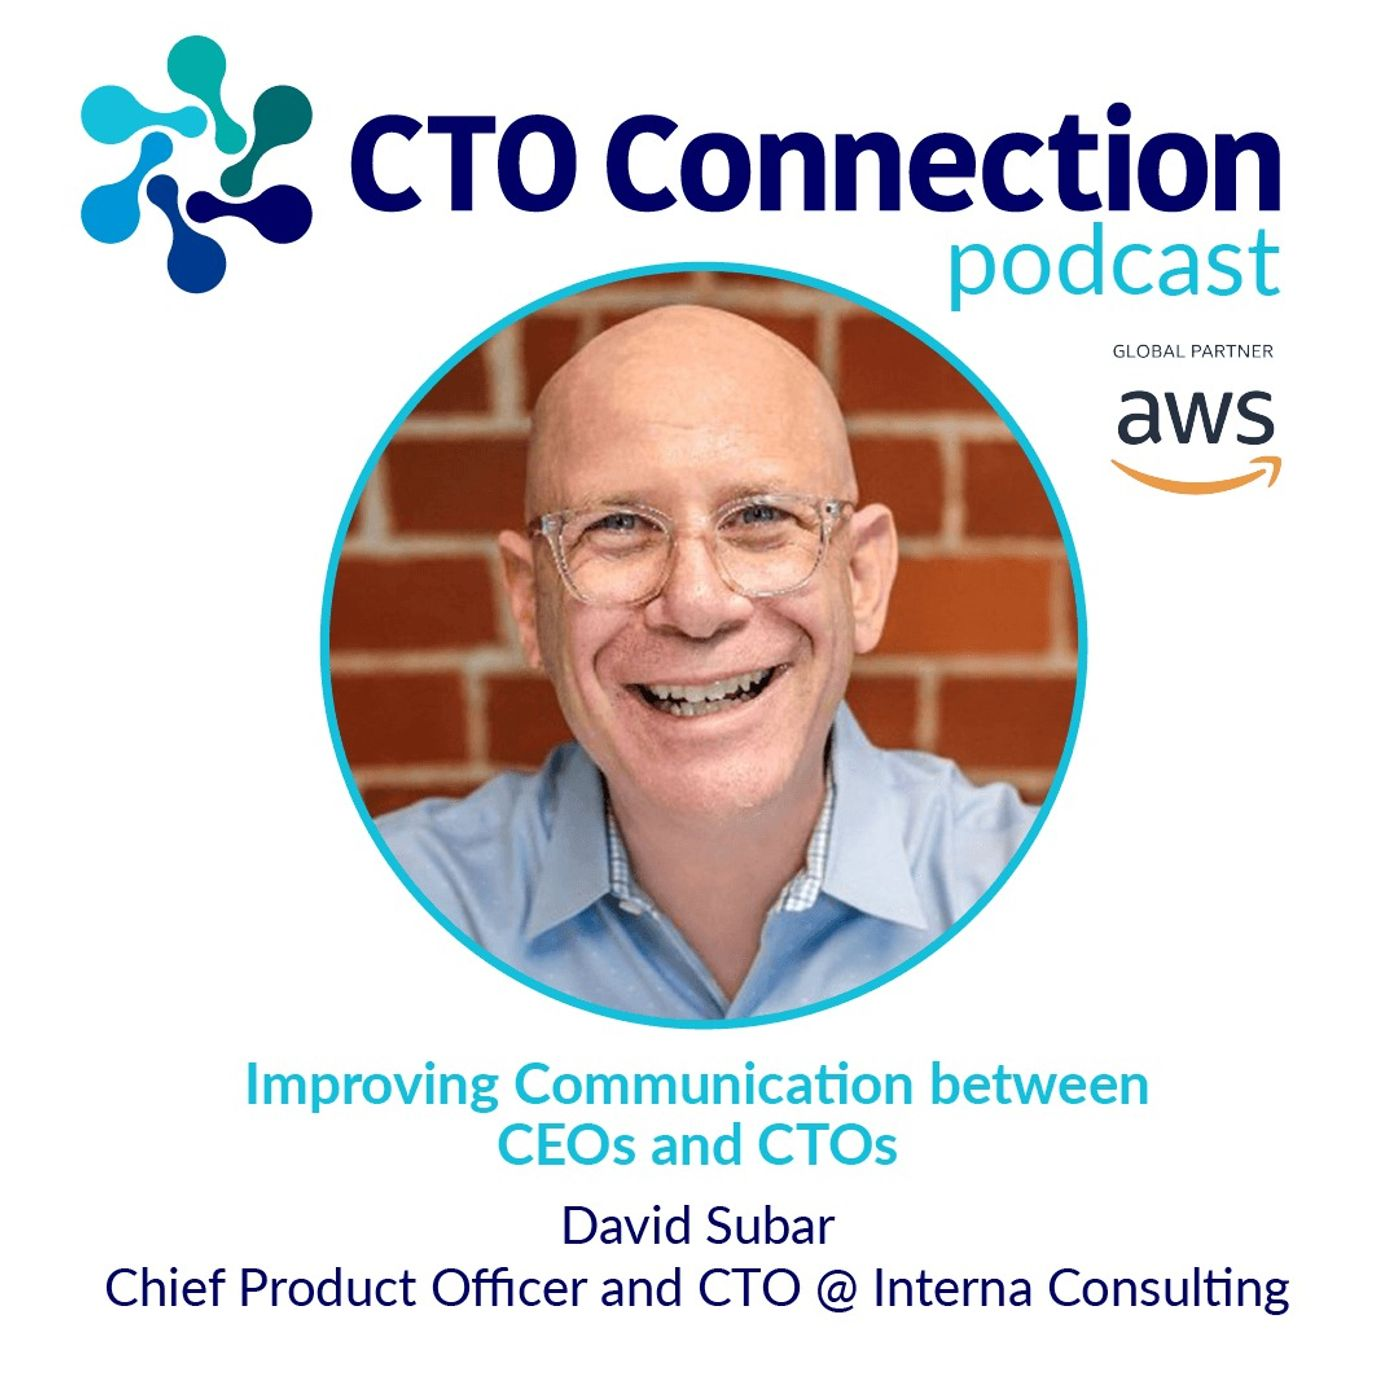 Improving Communication between CEOs and CTOs with David Subar